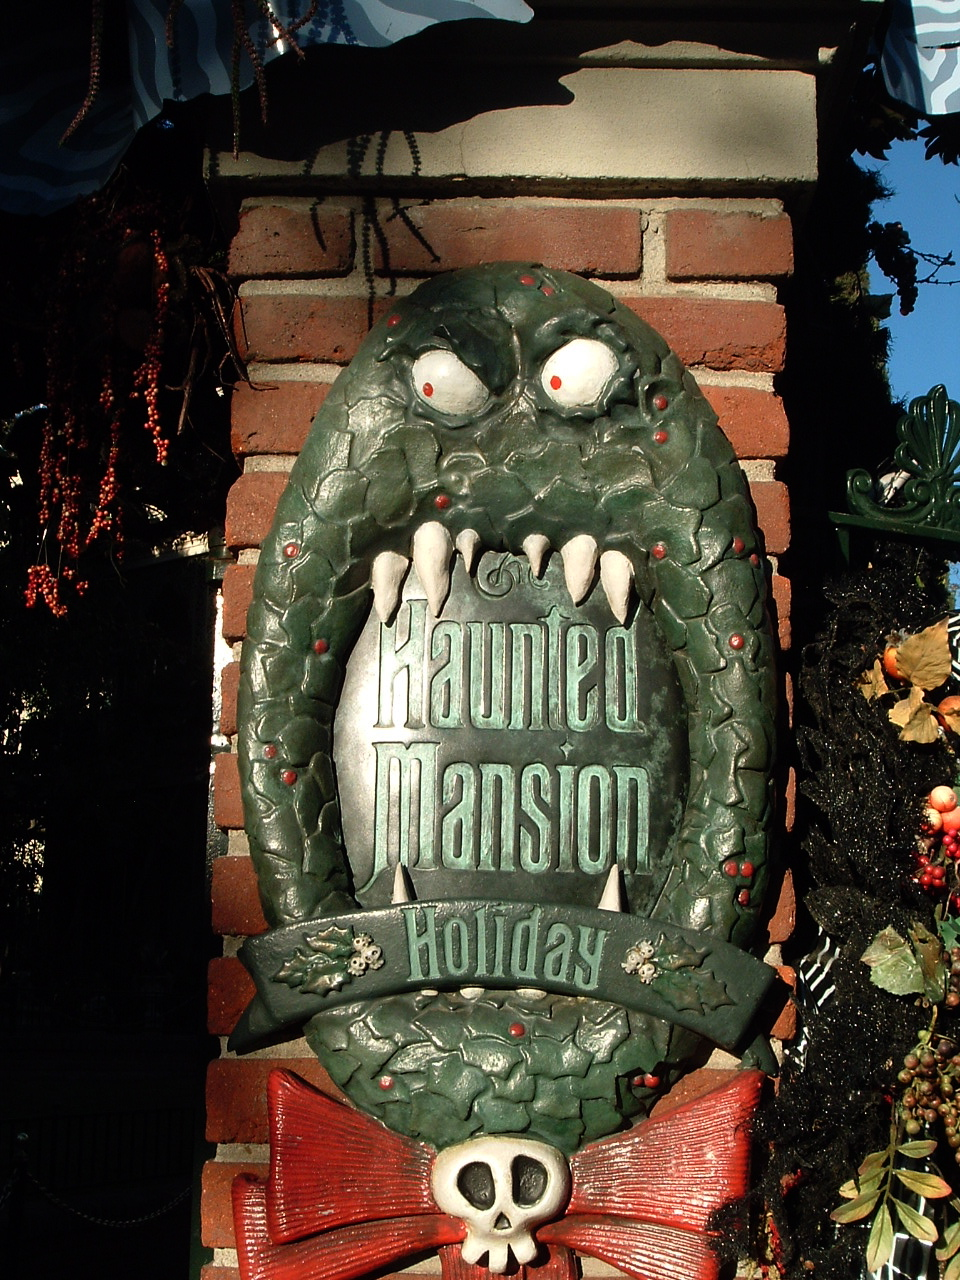 Haunted Mansion Holiday Foyer Music : Goodwill hunting geeks creepmas day kandy coated